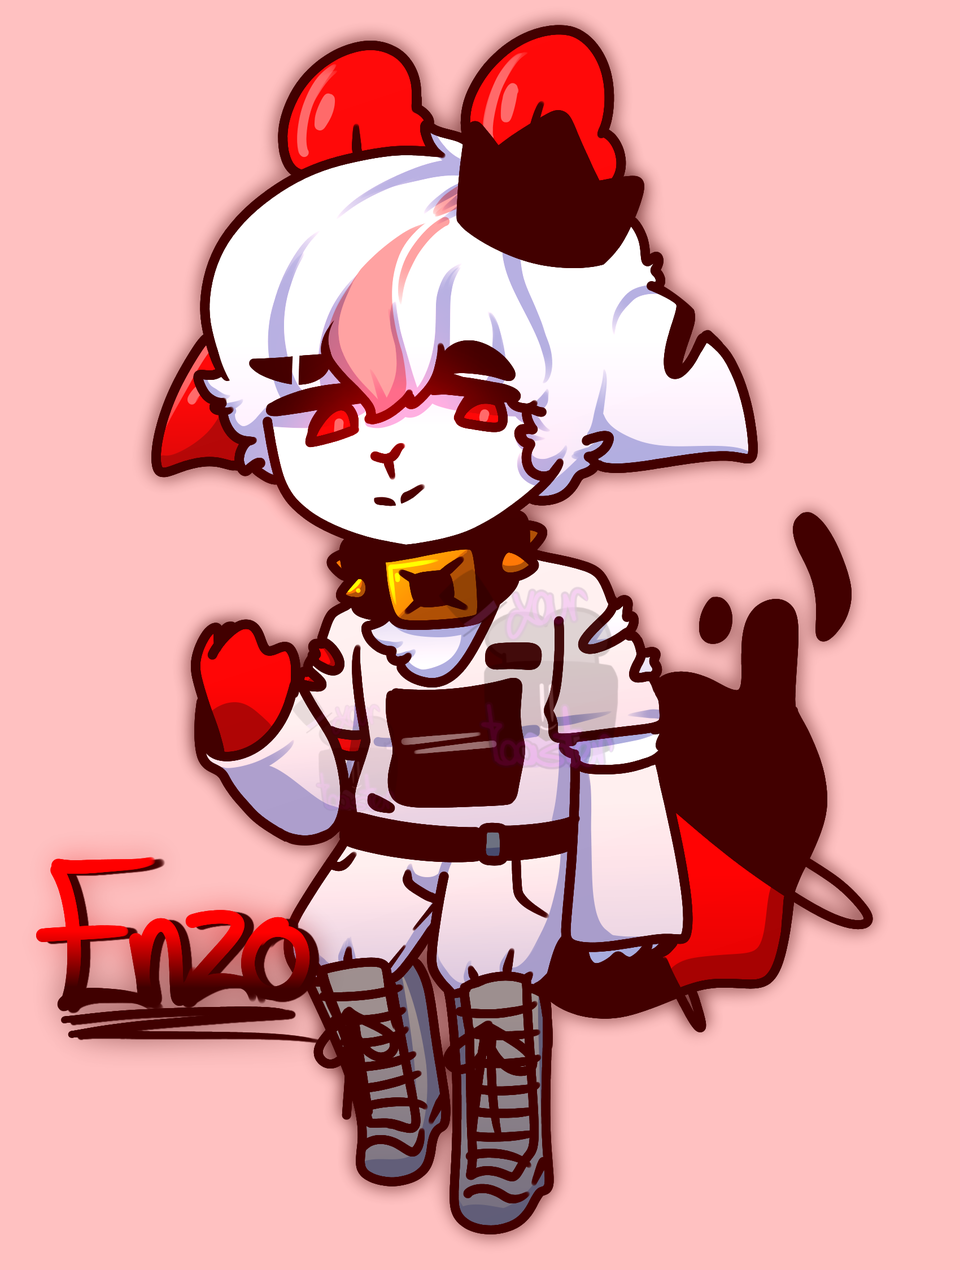 ayyy its Enzo but- anthro?